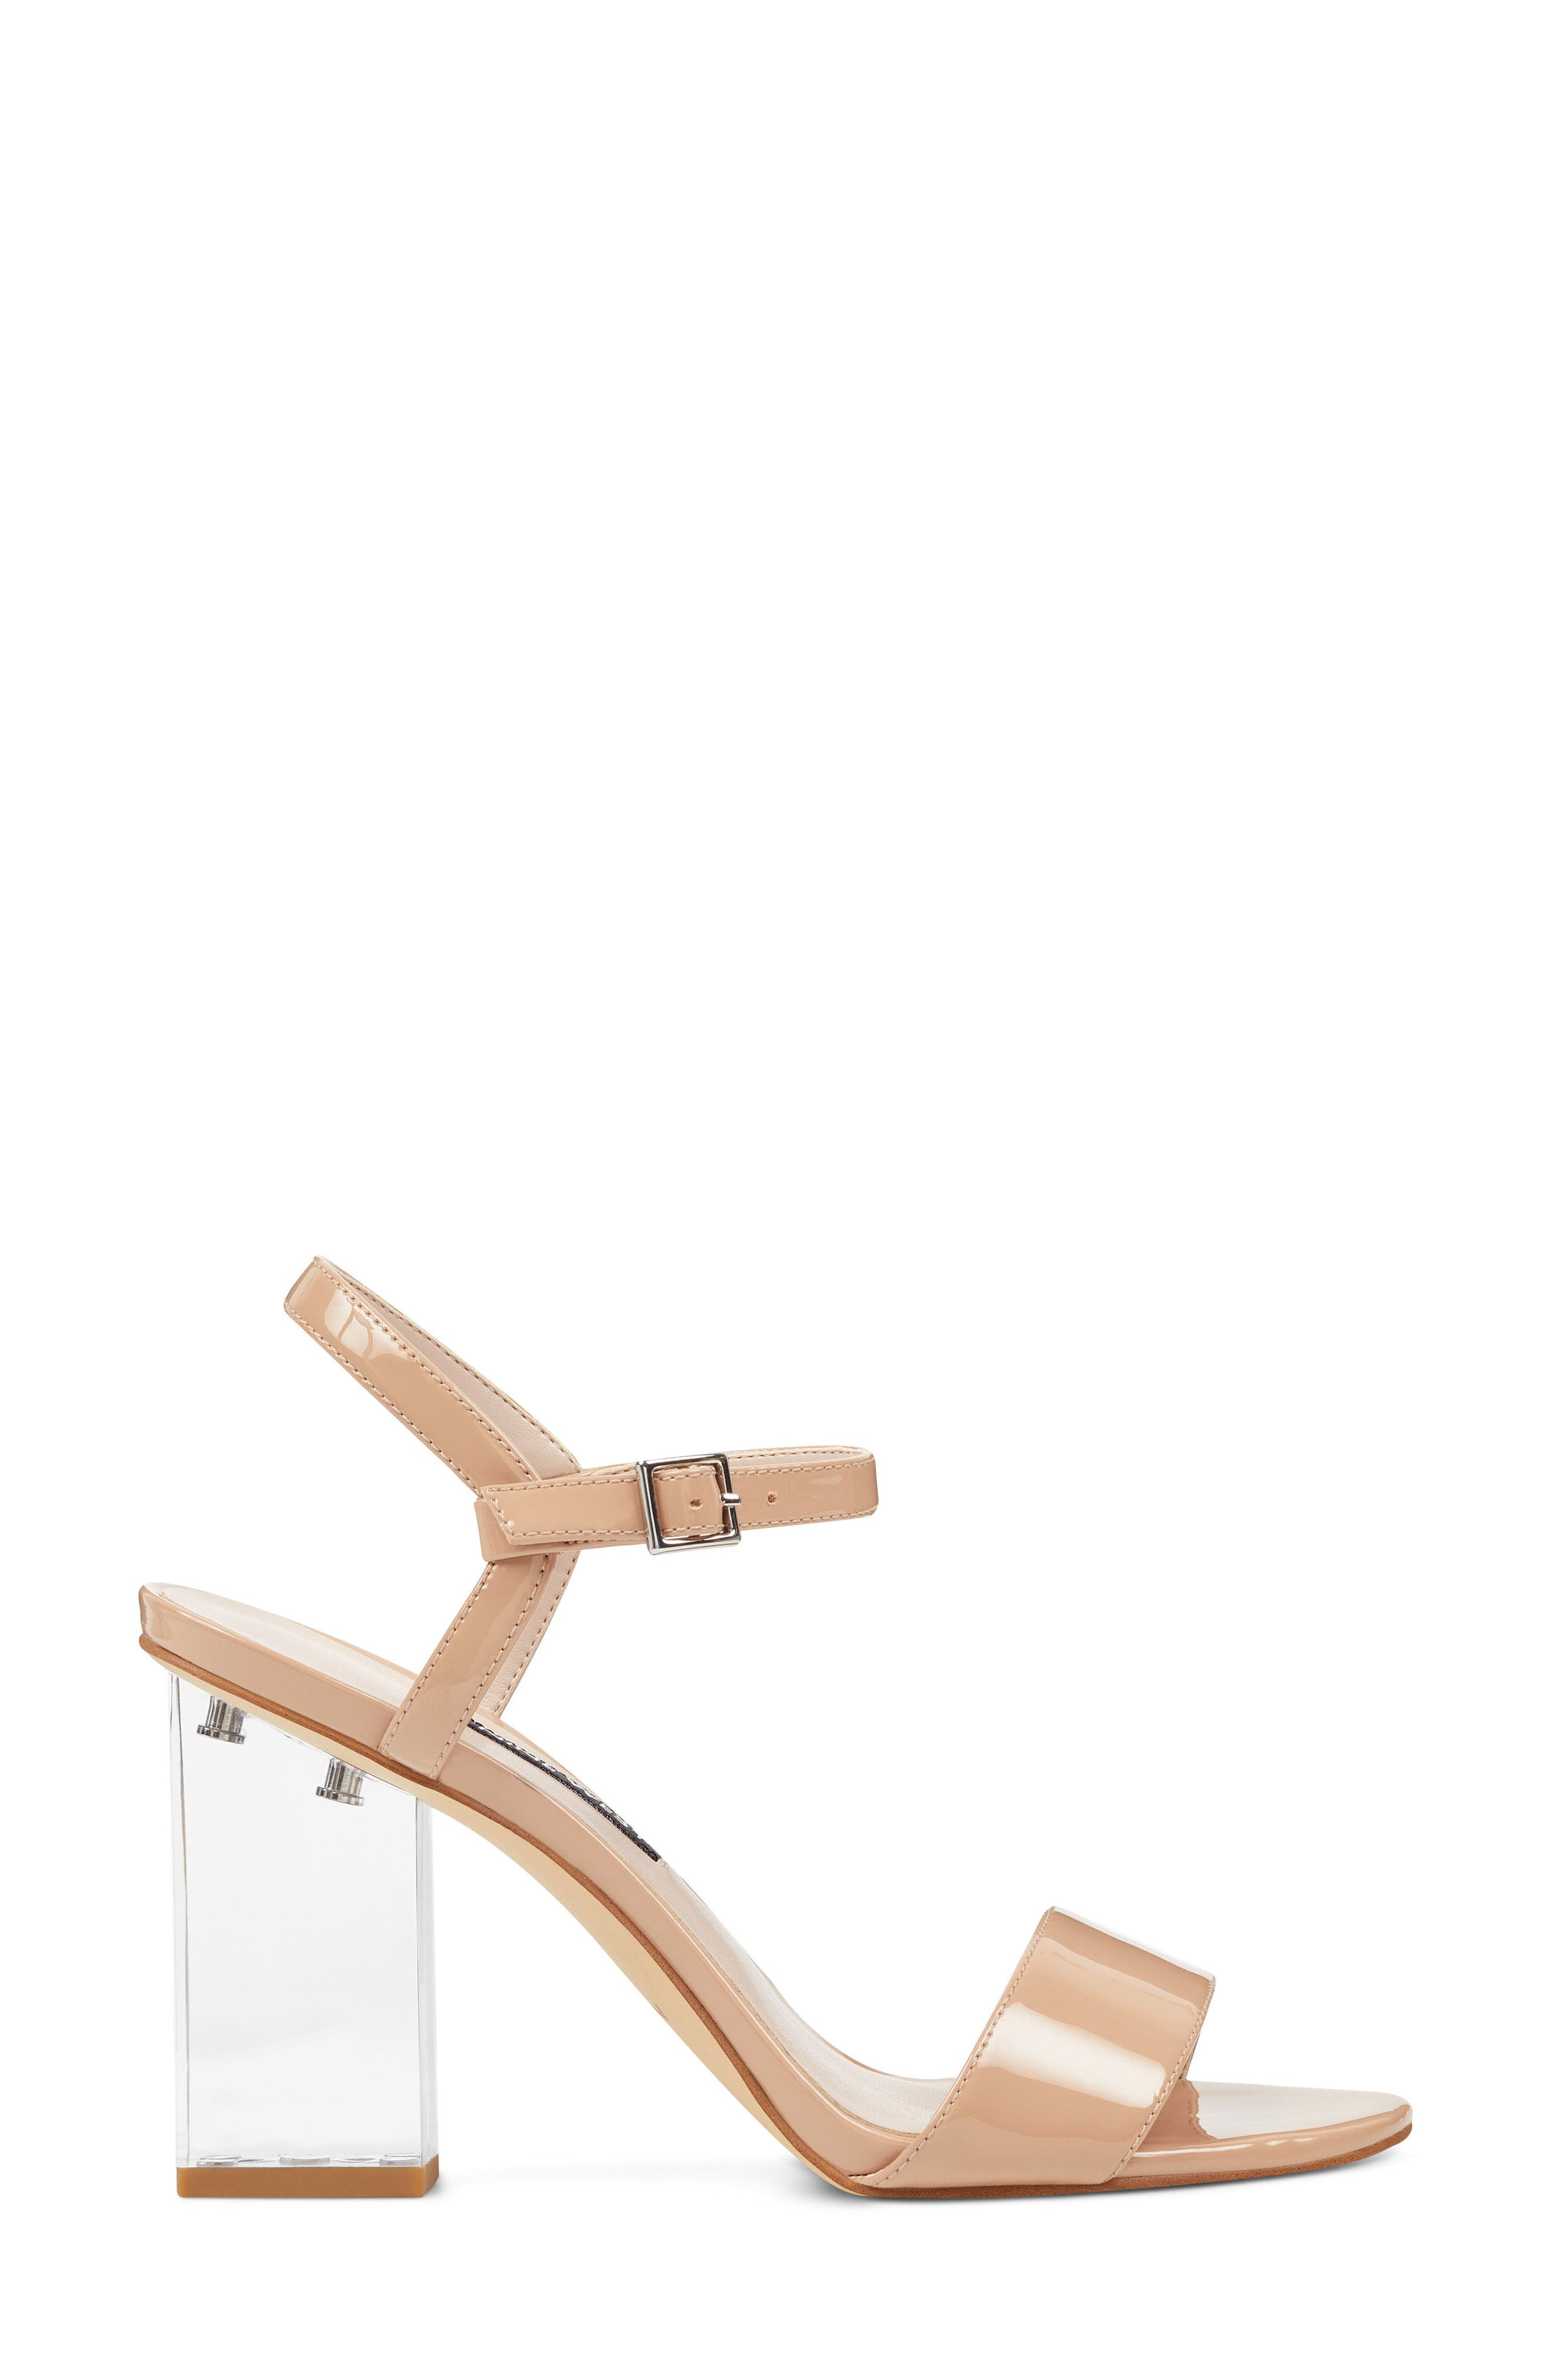 Feisty Ankle Strap Sandal,                             Alternate thumbnail 3, color,                             Nude Suede